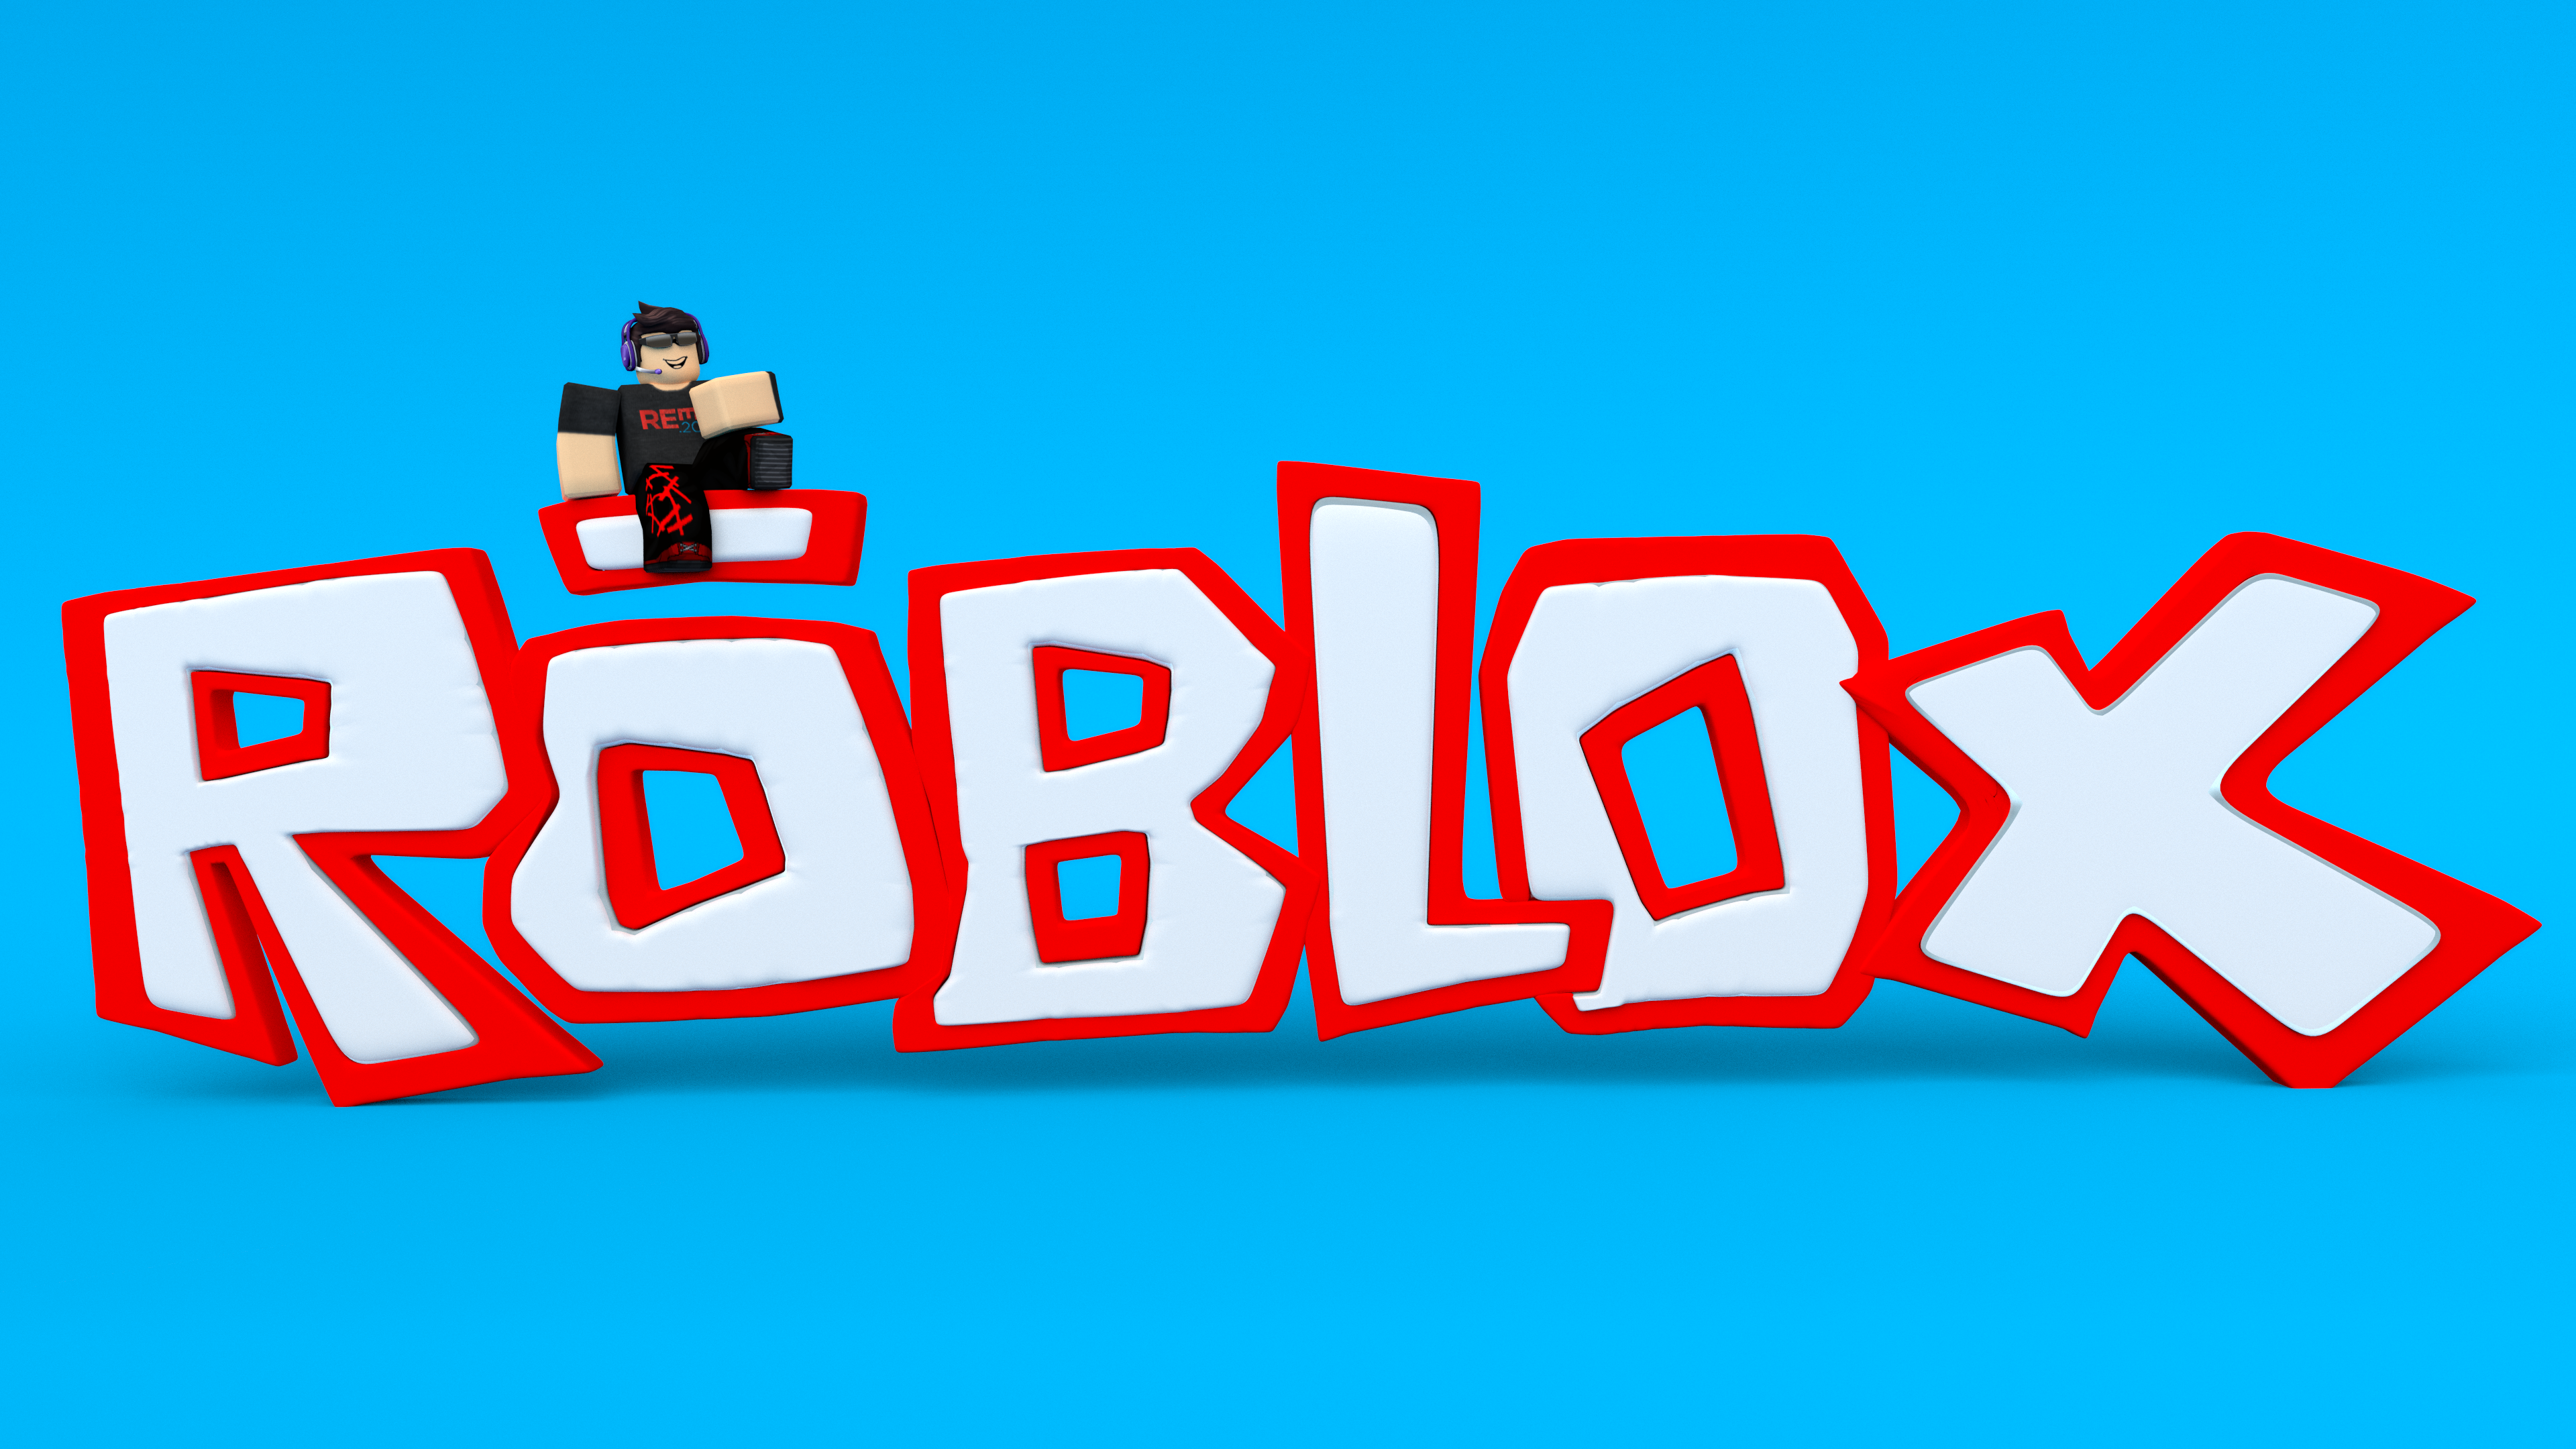 2048 By 1152 Roblox Jjwood1600 Roblox Lounge By Jurokoo On Deviantart